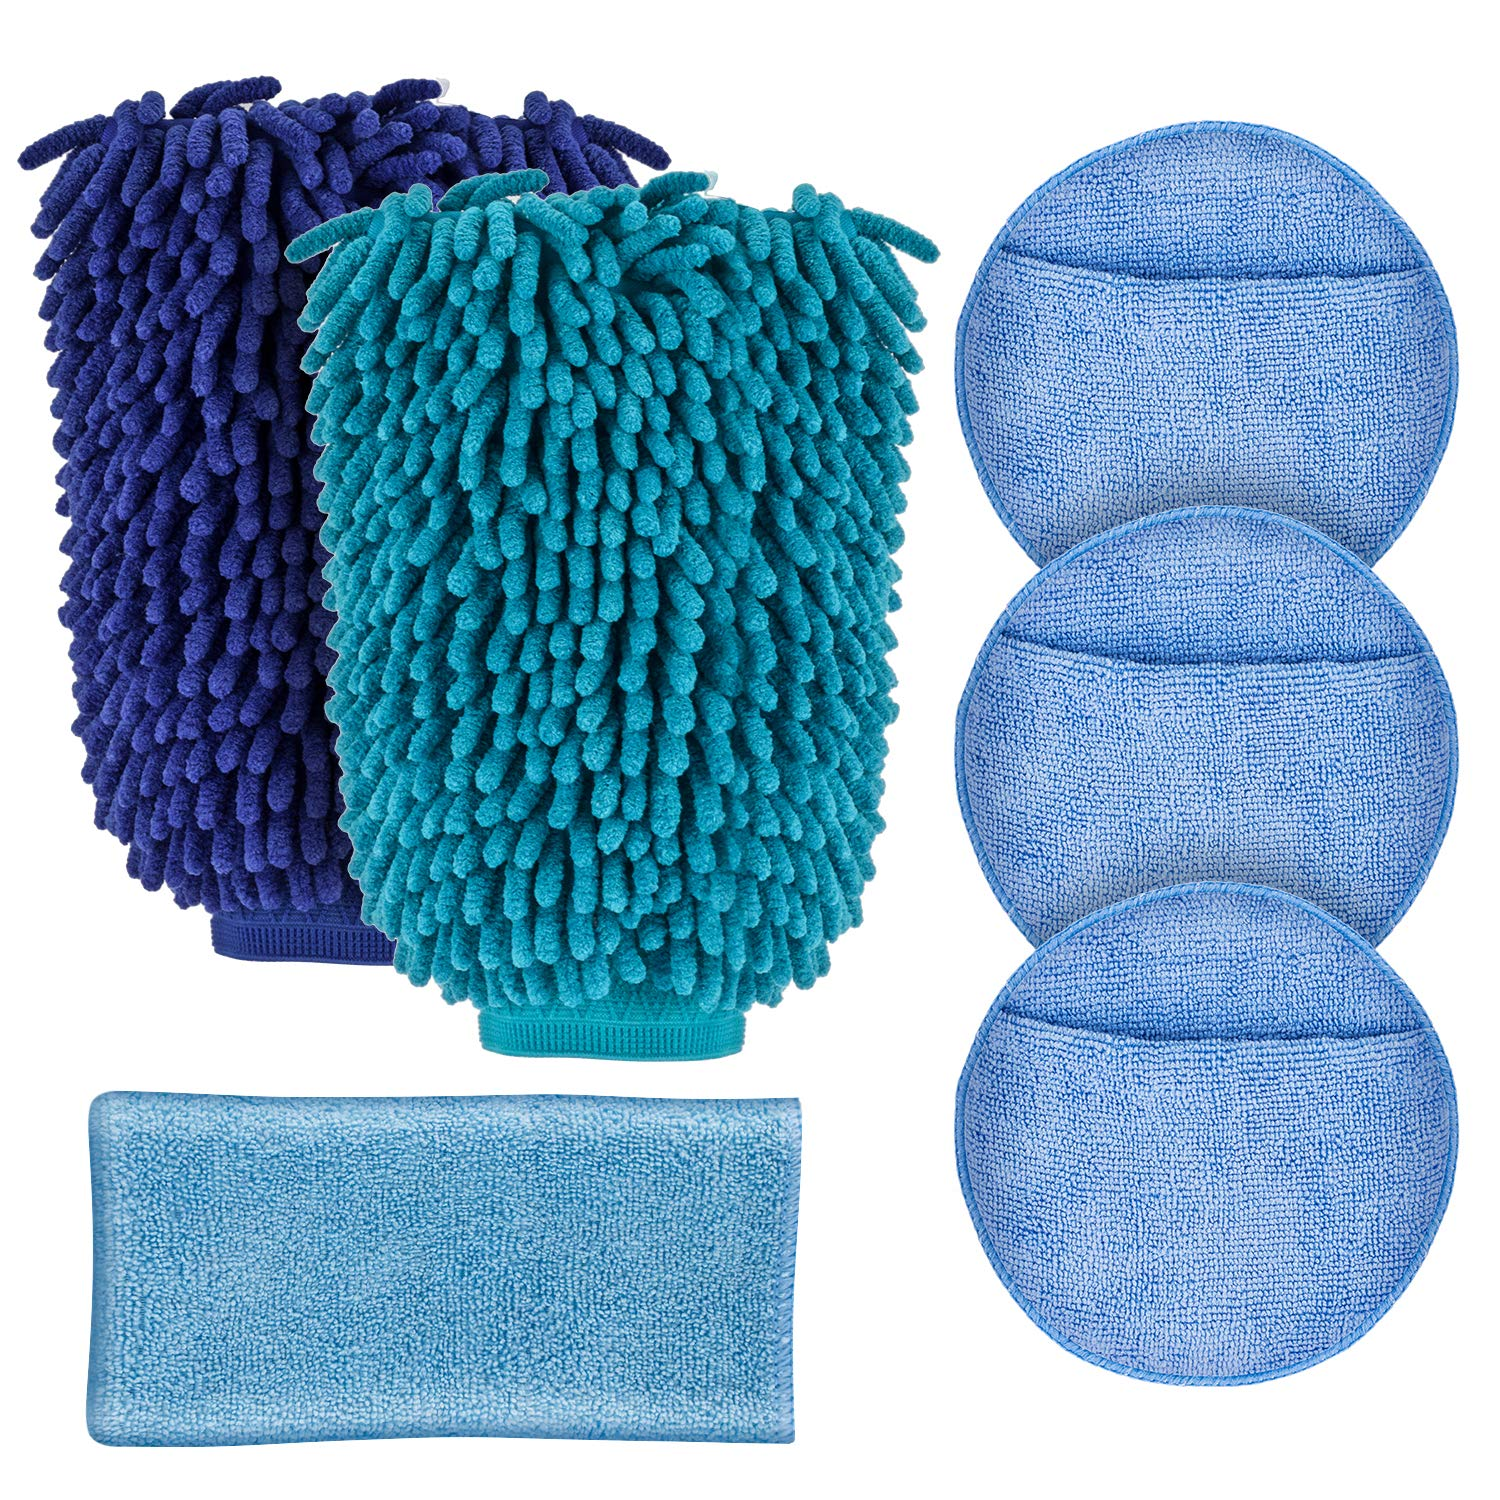 JIAFENG Car Cleaning Kit 6PCS - Car Wash Mitt-2 Pack Extra Large Size,Chenille Microfiber,Car Care Microfiber Wax Applicator Pads, Car Wash Towels Drying Cleaning Cloth,Scratch Free,Lint Free